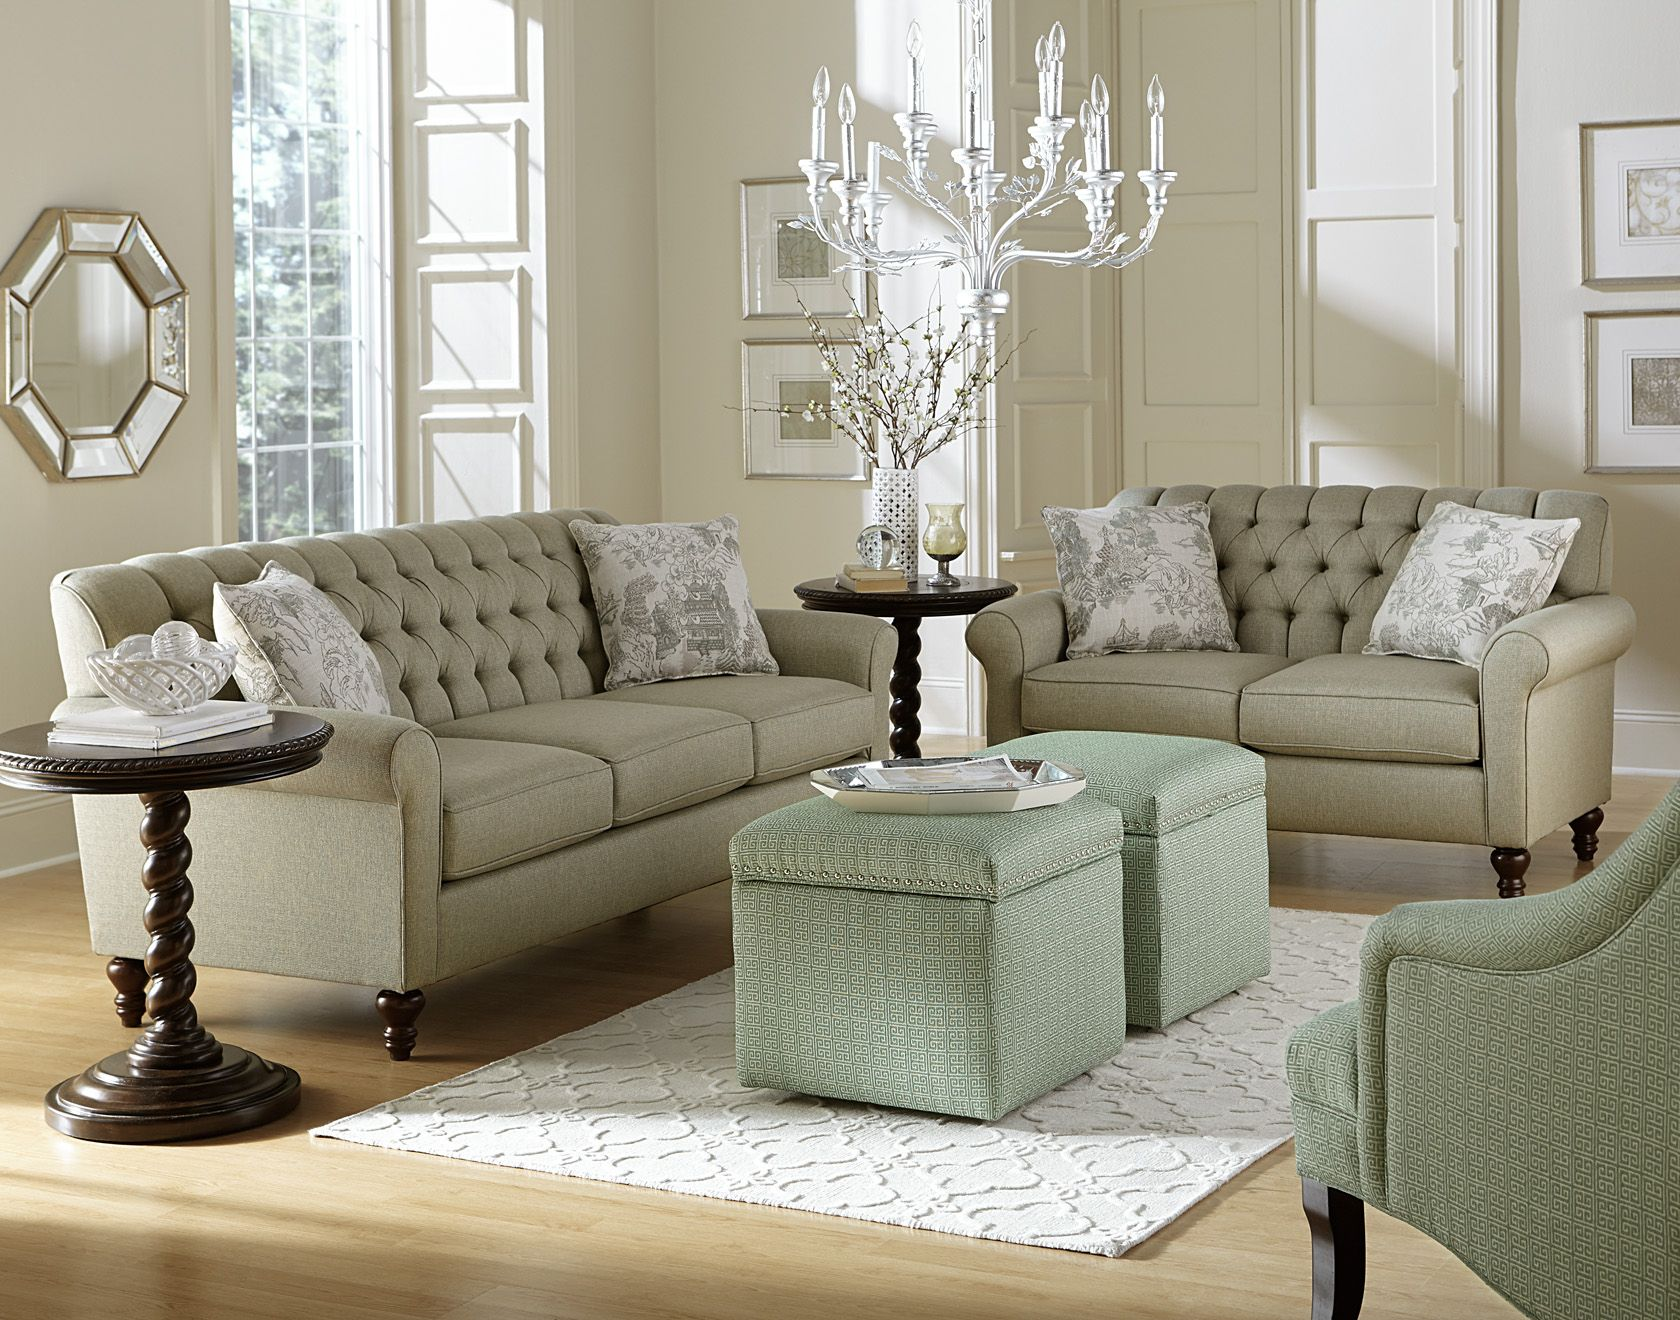 England Furniture 2v00 With Hanson Mist And Ancient City Fabrics